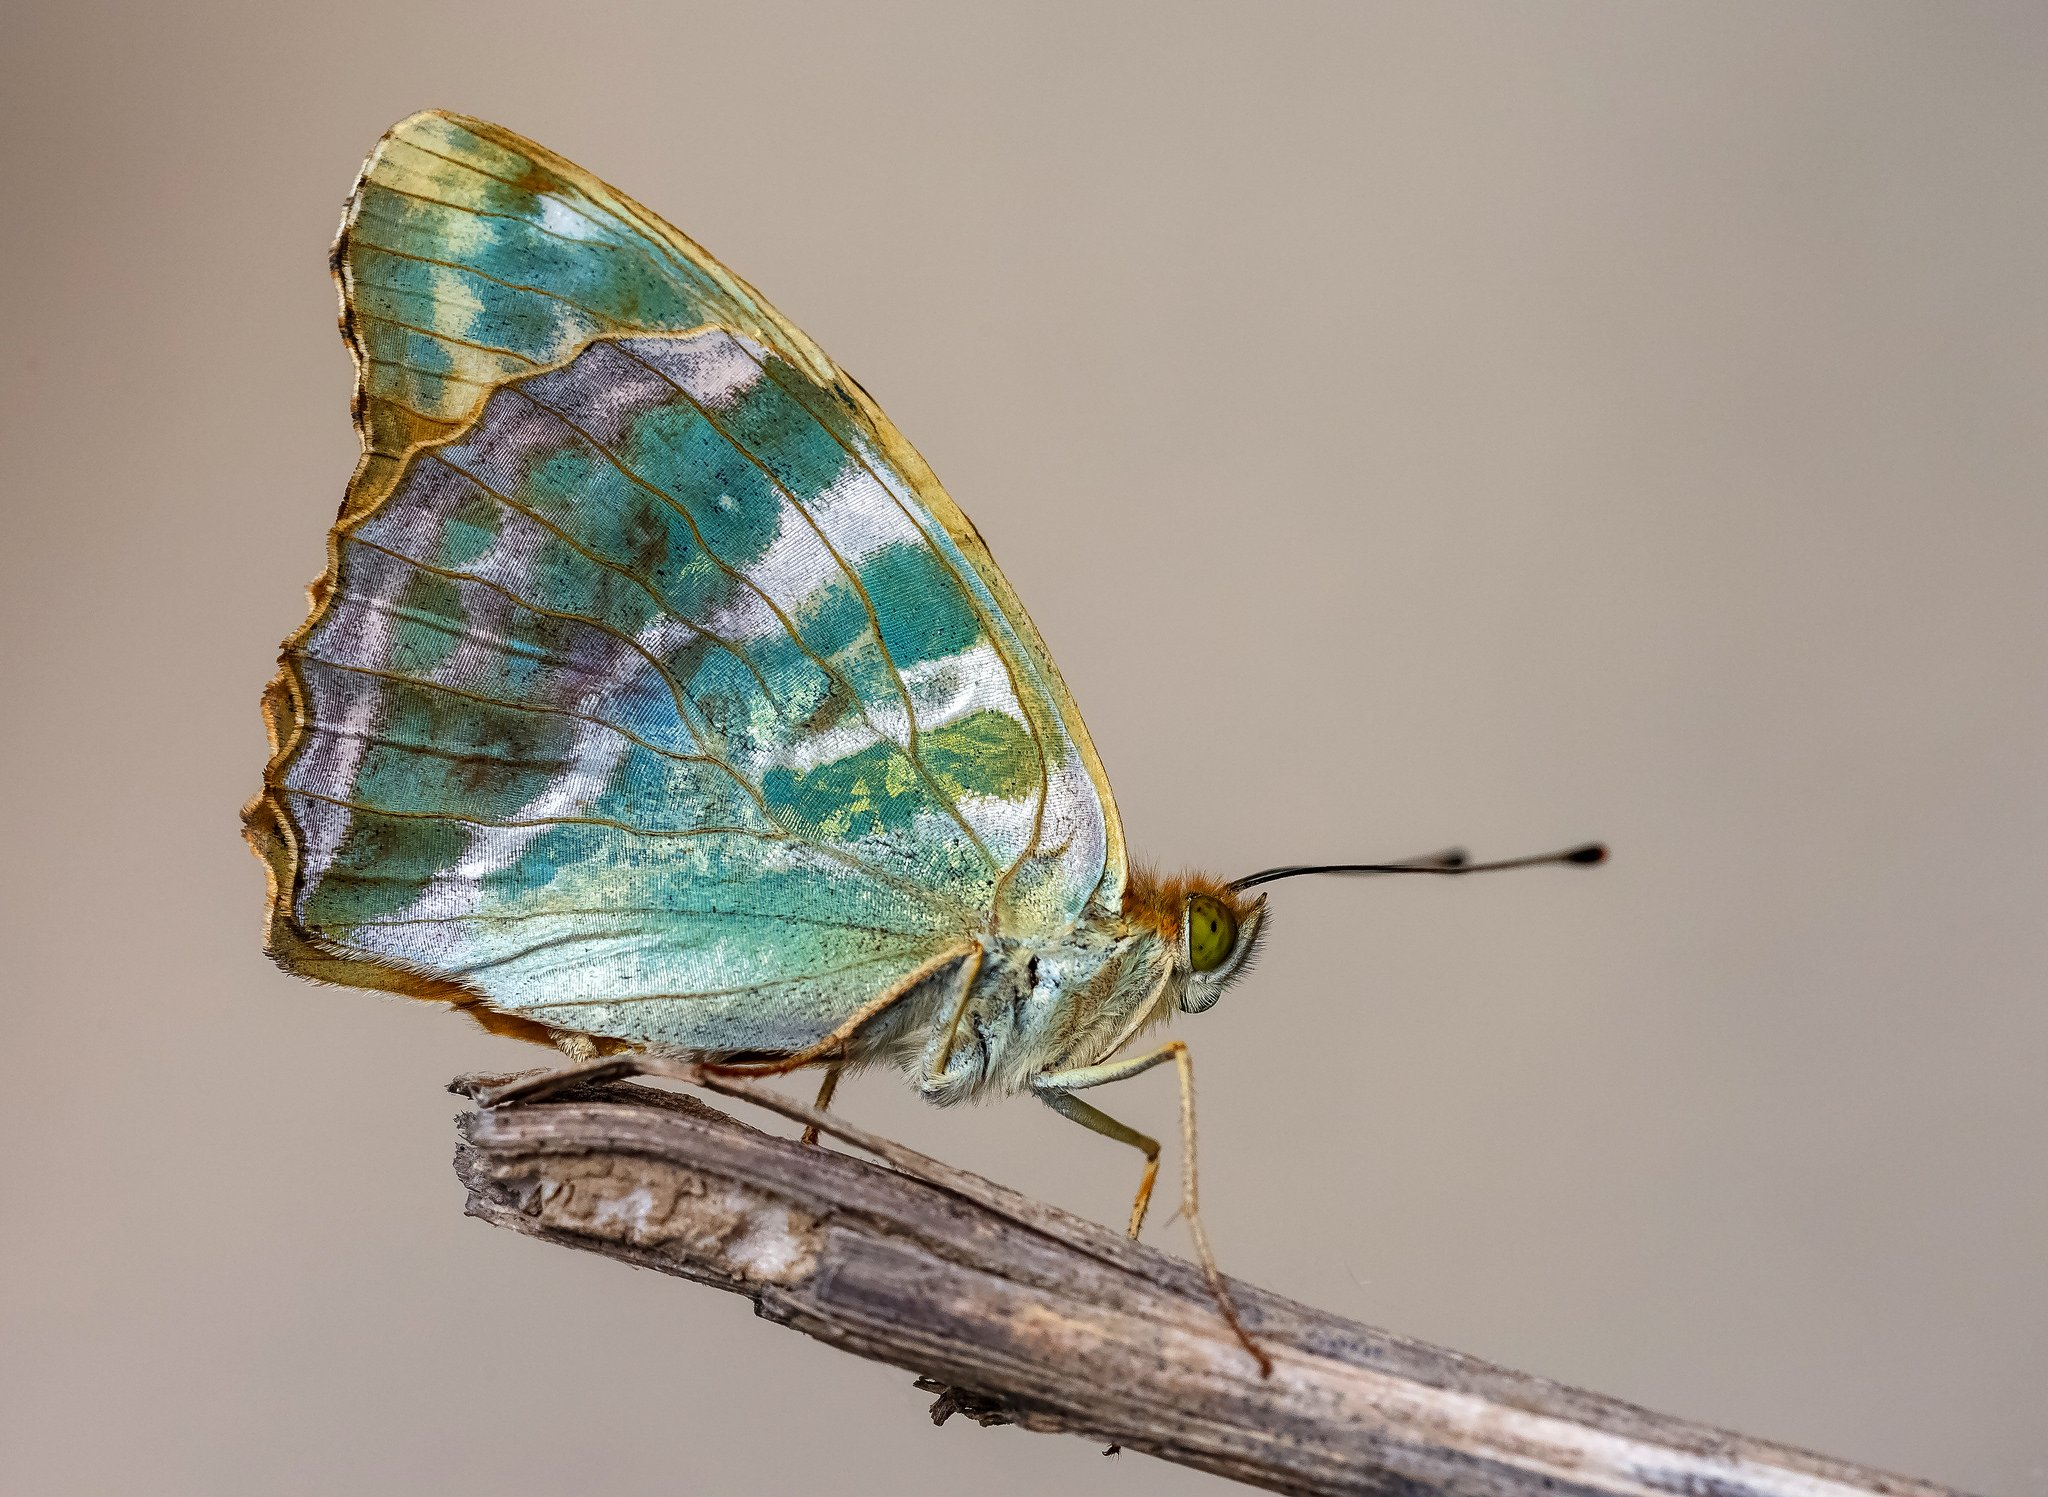 Spectacular iridescent colours on the underside of this Silver-washed Fritillary! Photographed by Adam Gor ✨#FridayFeeling https://t.co/vYpBUpAsBG